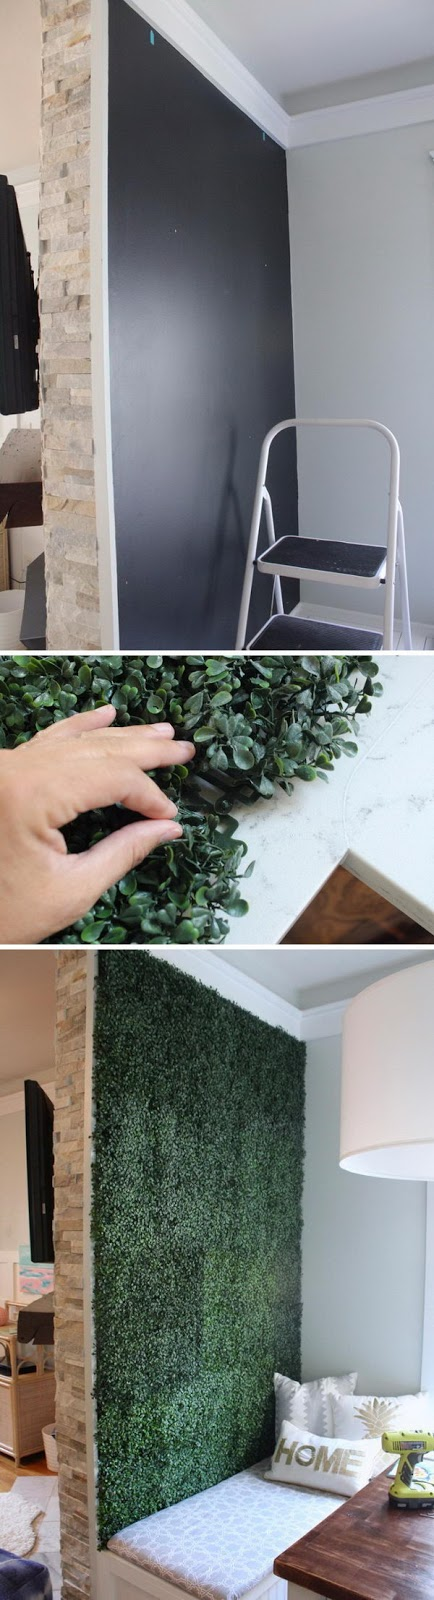 25 Affordable Diy Creative Wall Upgrade Ideas From An Ugly